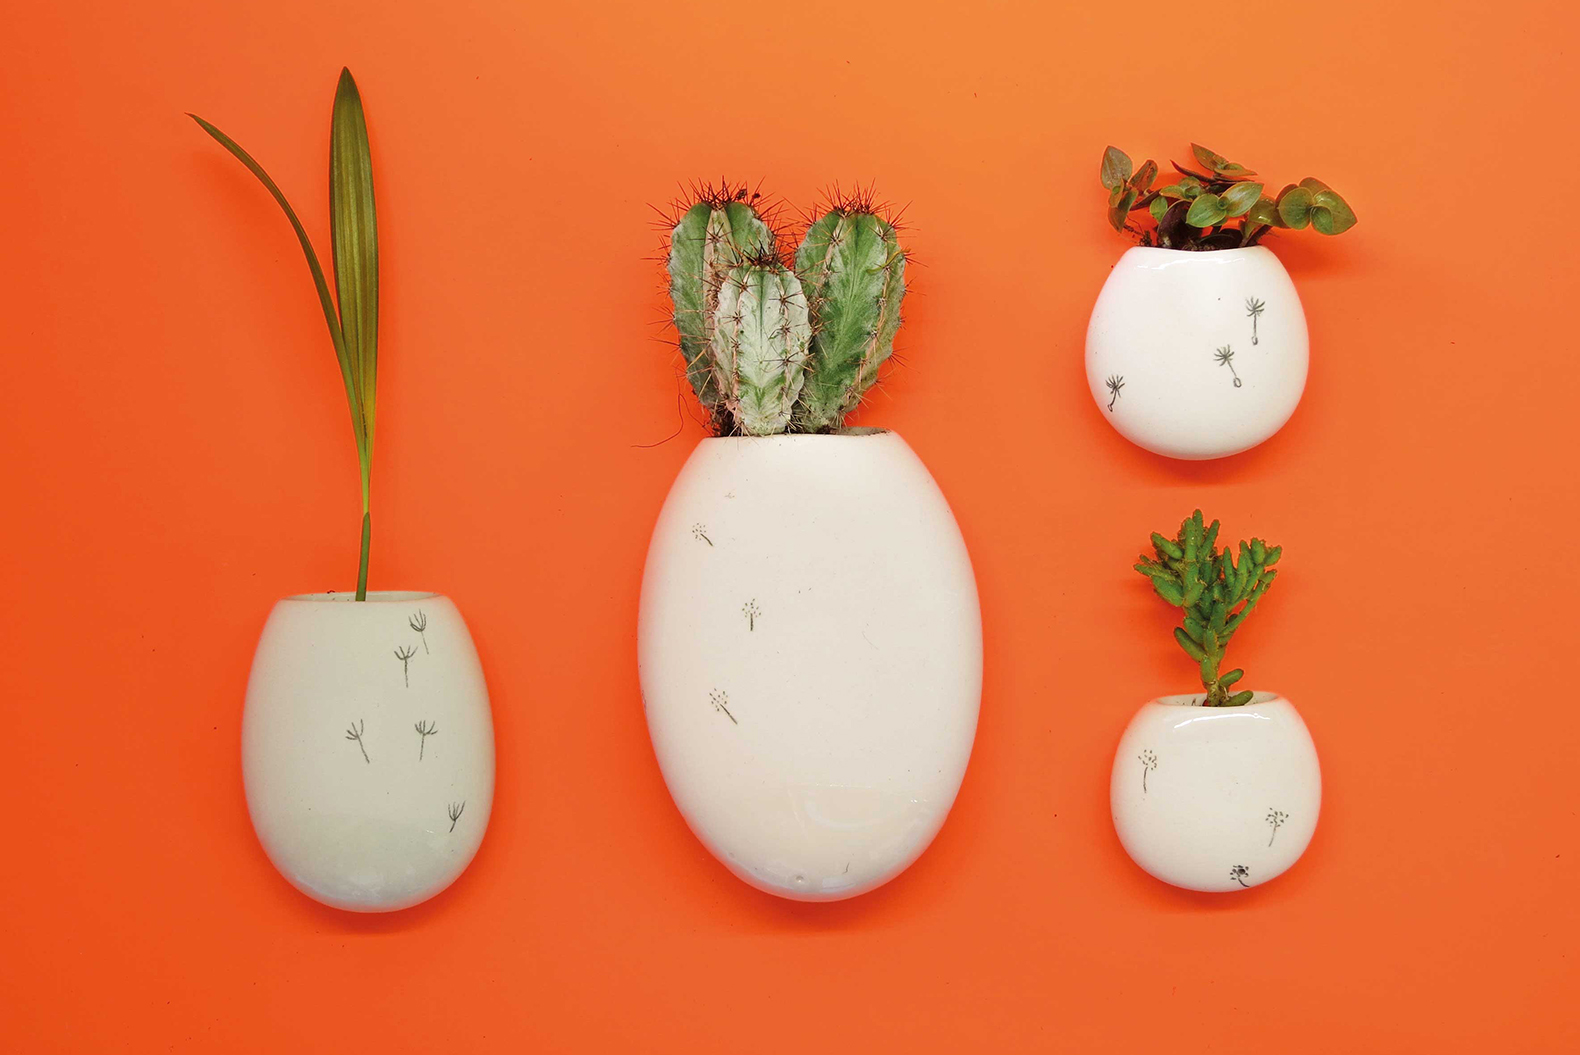 Ceramic 'Wall Pockets' Turn Plain White Walls Into Green